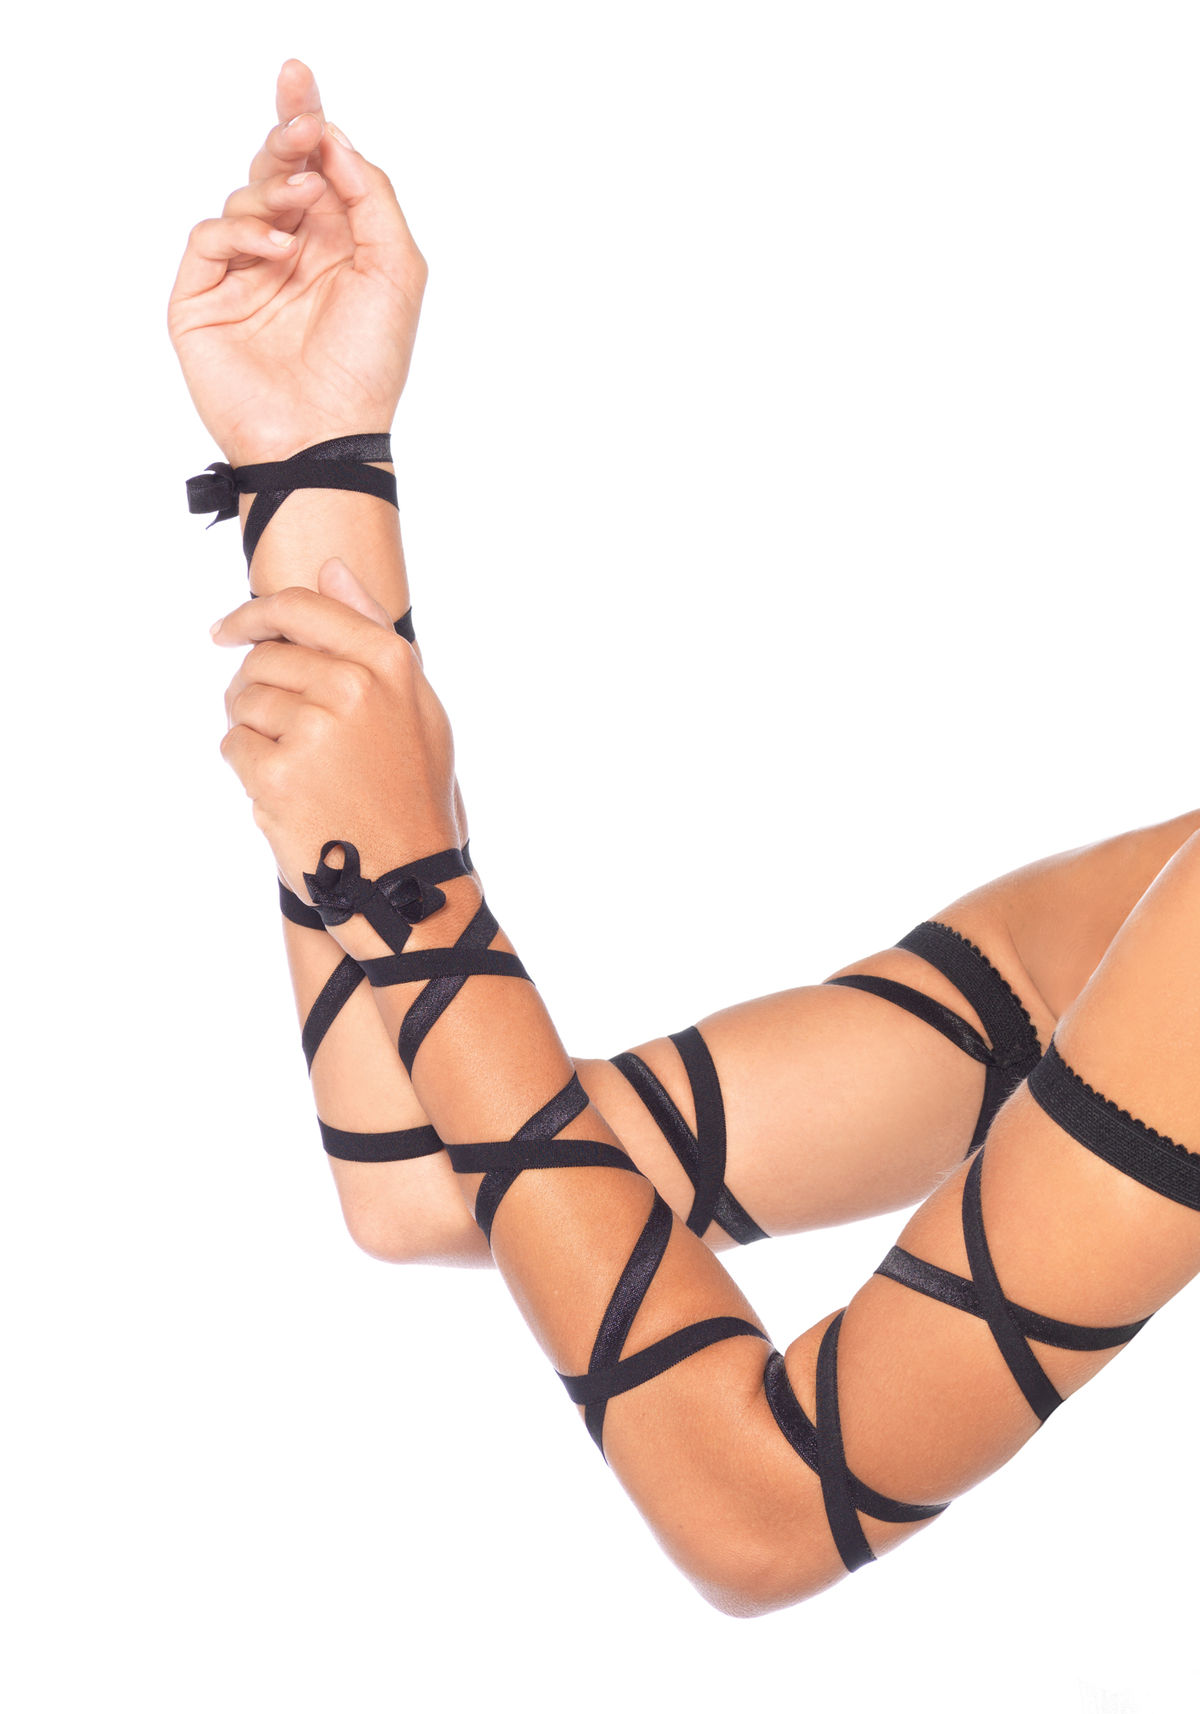 Shiny Black Elastic Arm Wraps 3729 Edmonton